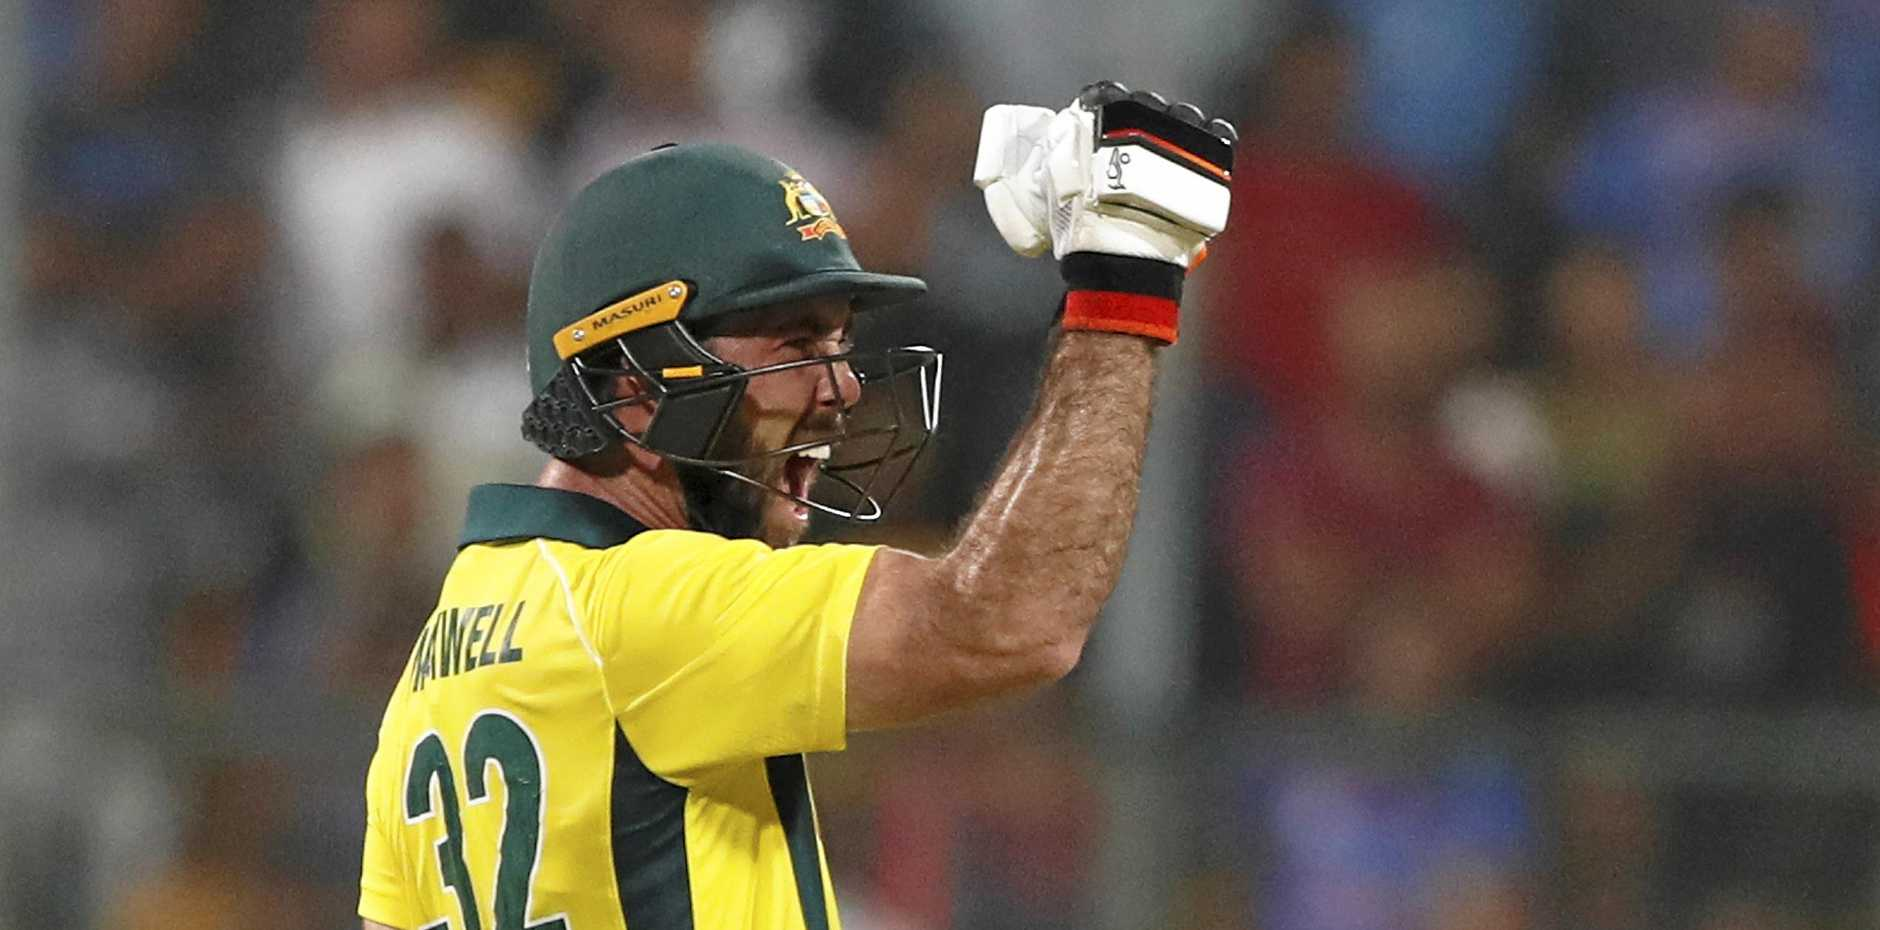 Australia's Glenn Maxwell reacts after scoring the winning run during the second T20 international cricket match between India and Australia in Bangalore, India, Wednesday, Feb. 27, 2019. (AP Photo/Aijaz Rahi)